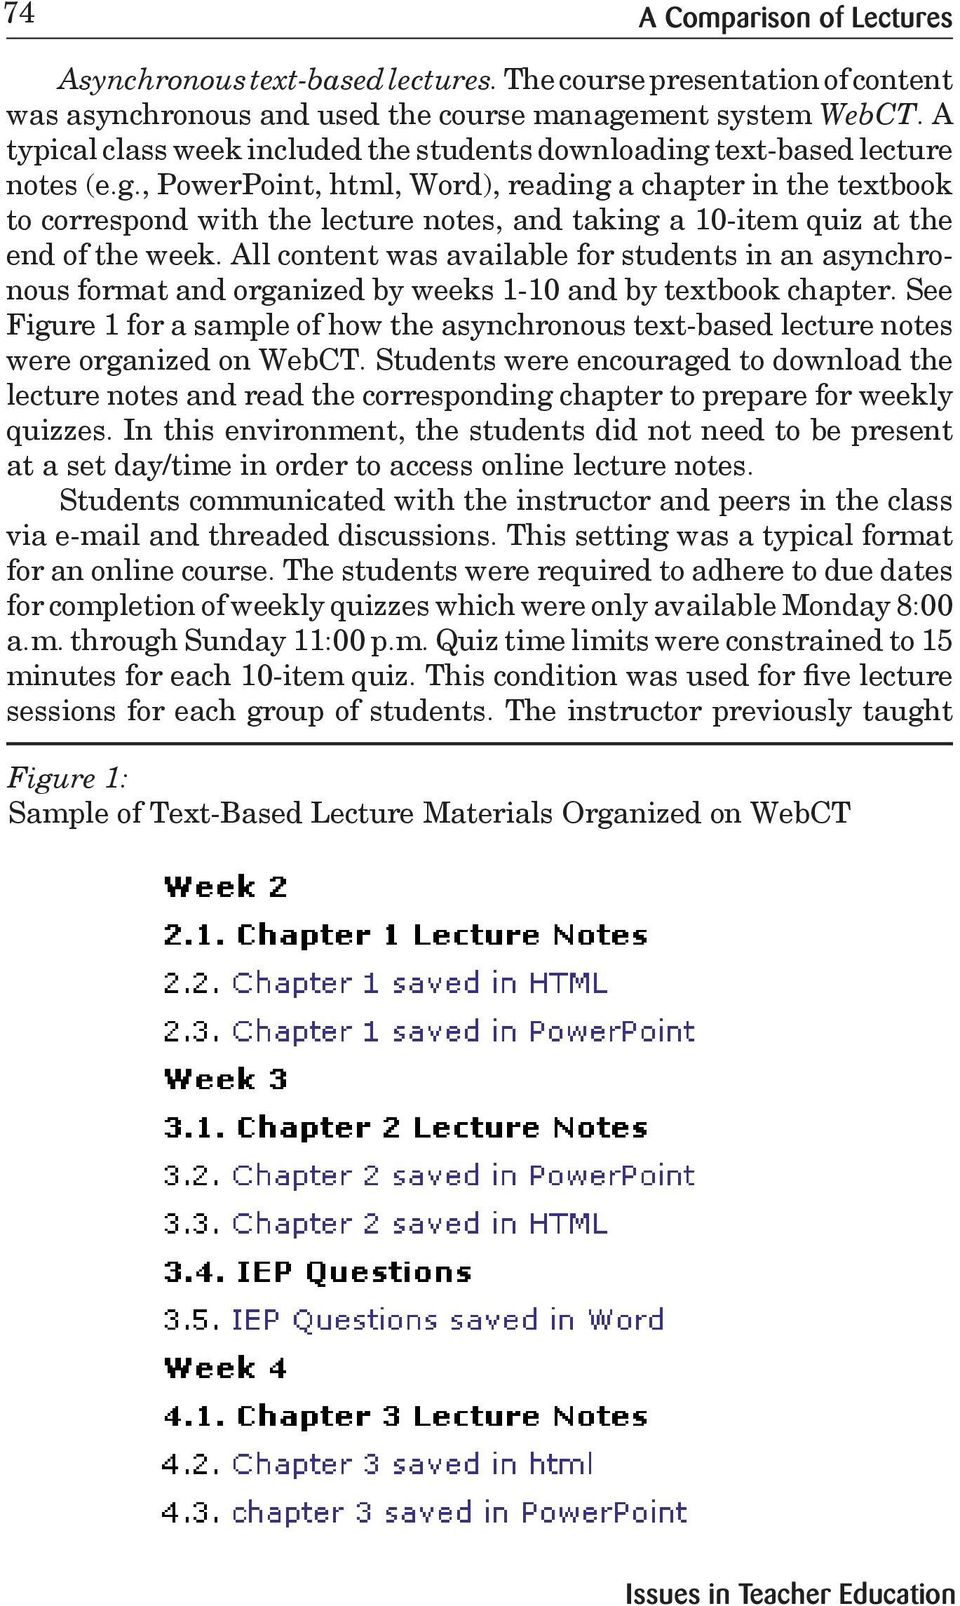 text-based lecture notes (e.g., PowerPoint, html, Word), reading a chapter in the textbook to correspond with the lecture notes, and taking a 10-item quiz at the end of the week.